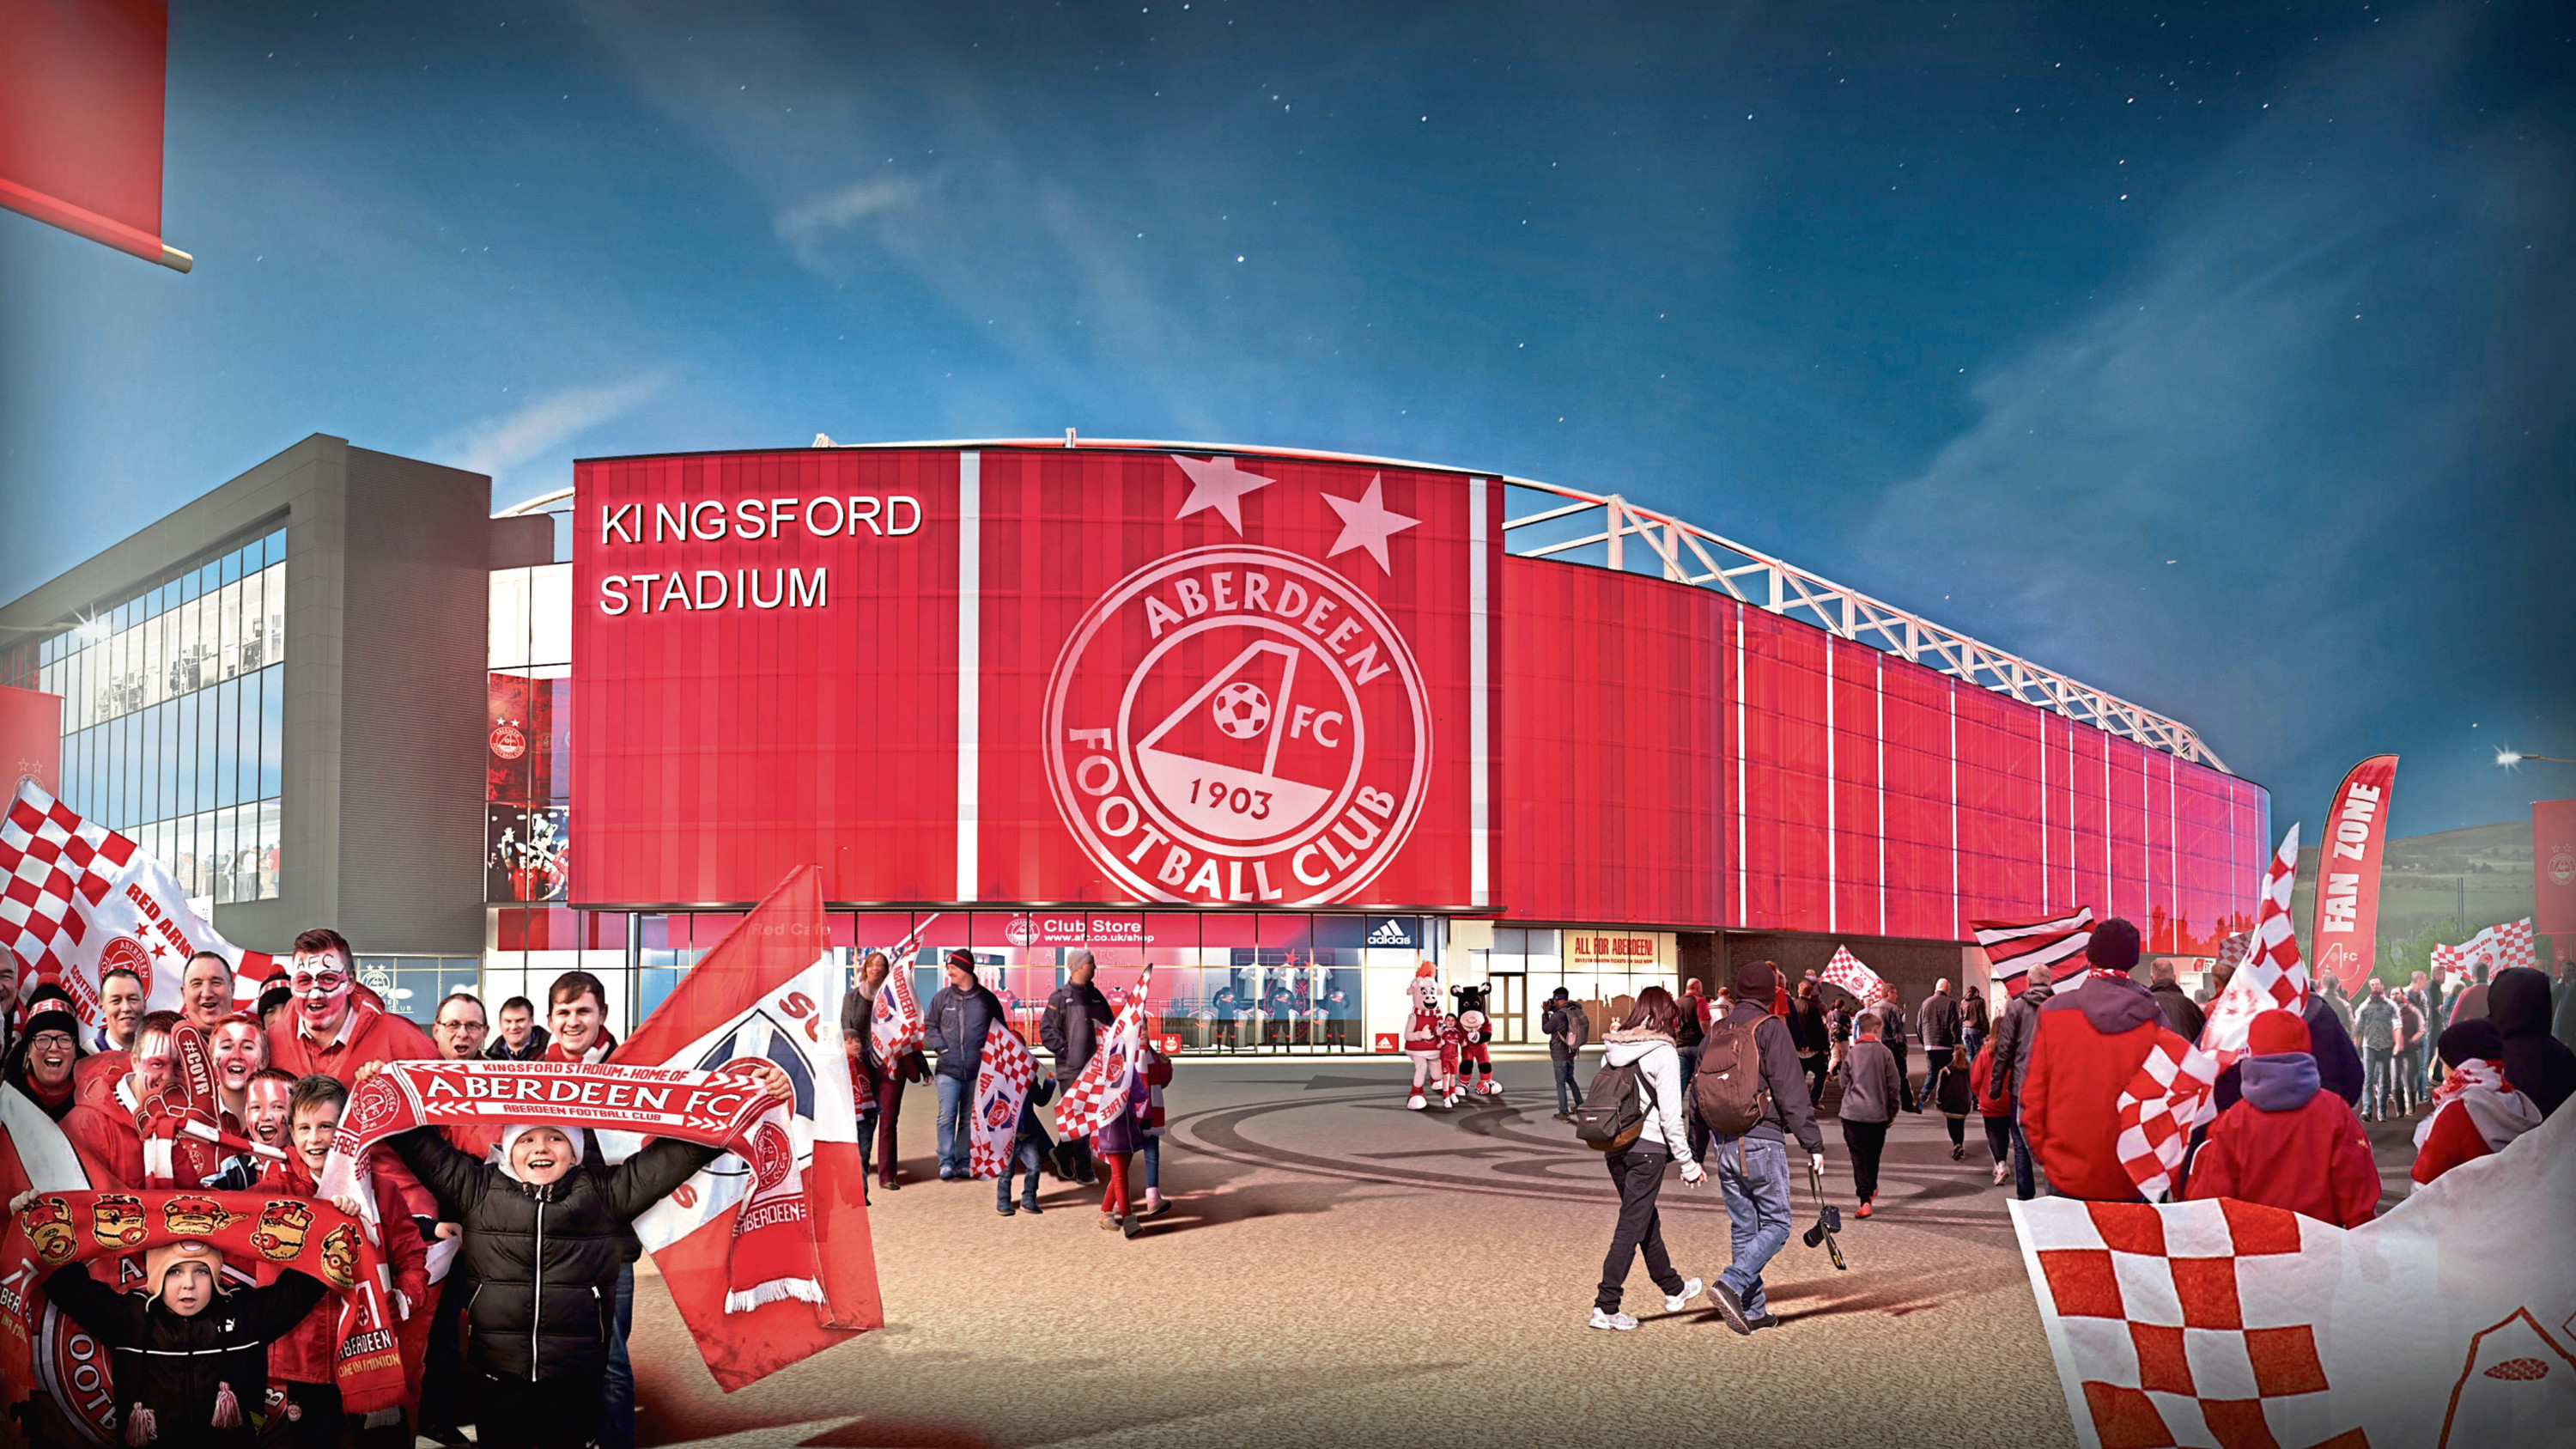 An artist impression of the planned stadium at Kingsford